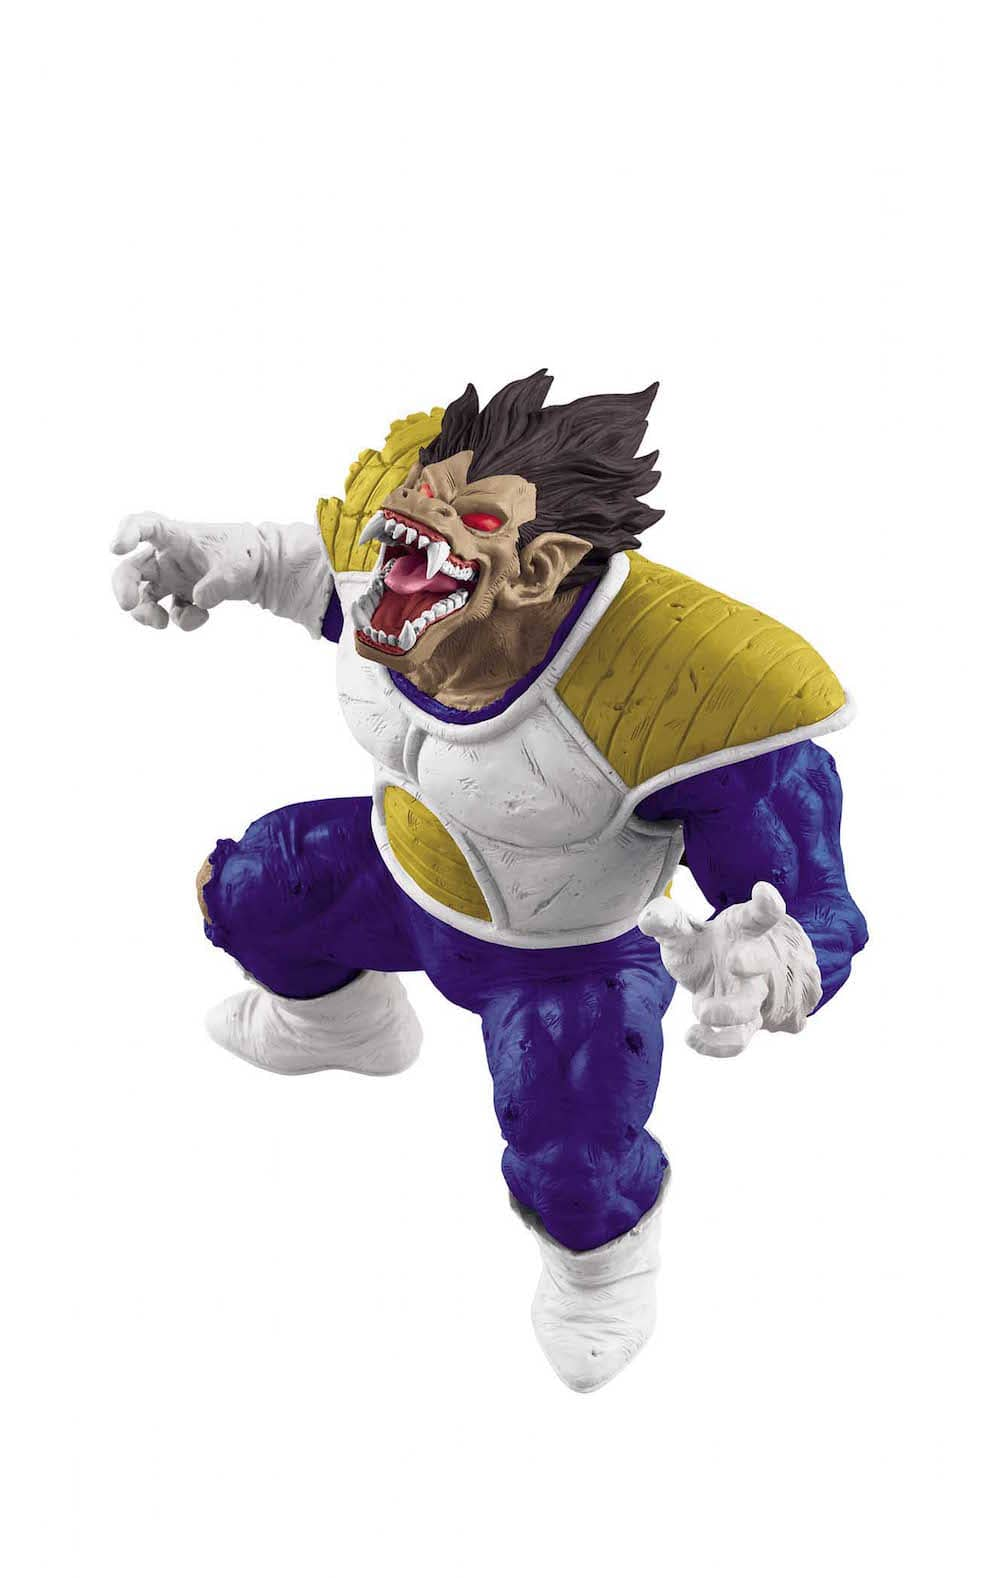 GREAT APE VEGETA FIGURA 13 CM DRAGON BALL CREATOR X CREATOR